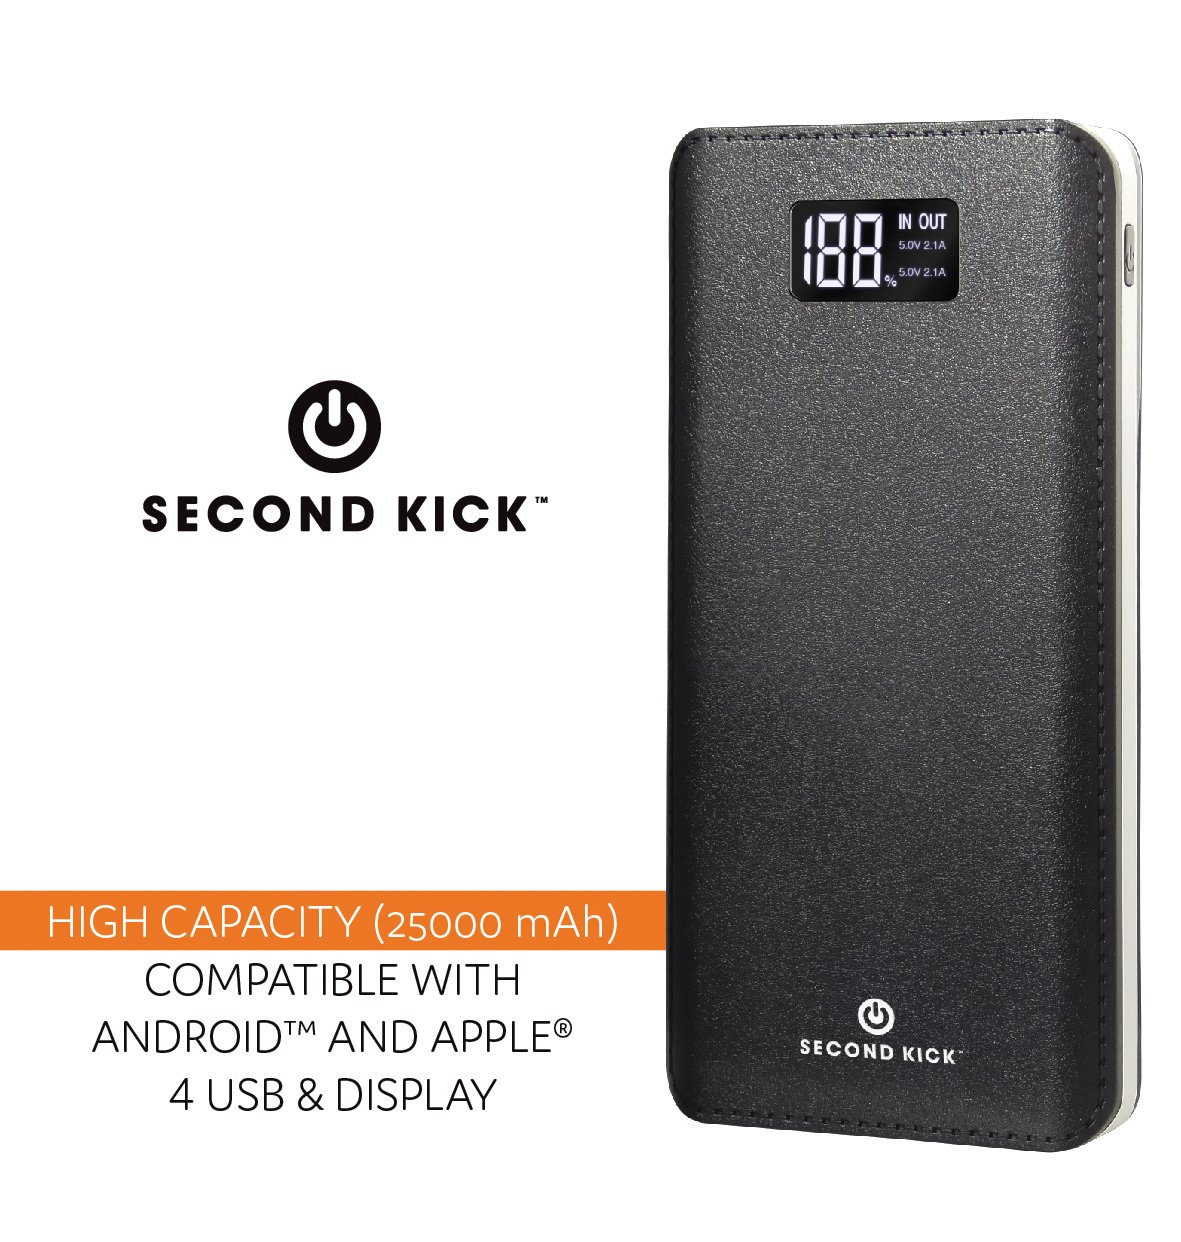 Portable Charger Ultra High Capacity Big 25000mAh Power Bank by Second Kick. 4 USB Ports Type C, Led Light & Led Display Screen. Big Power Battery Pack Compatible w iPhone, iPad, Samsung Android sm by Second Kick